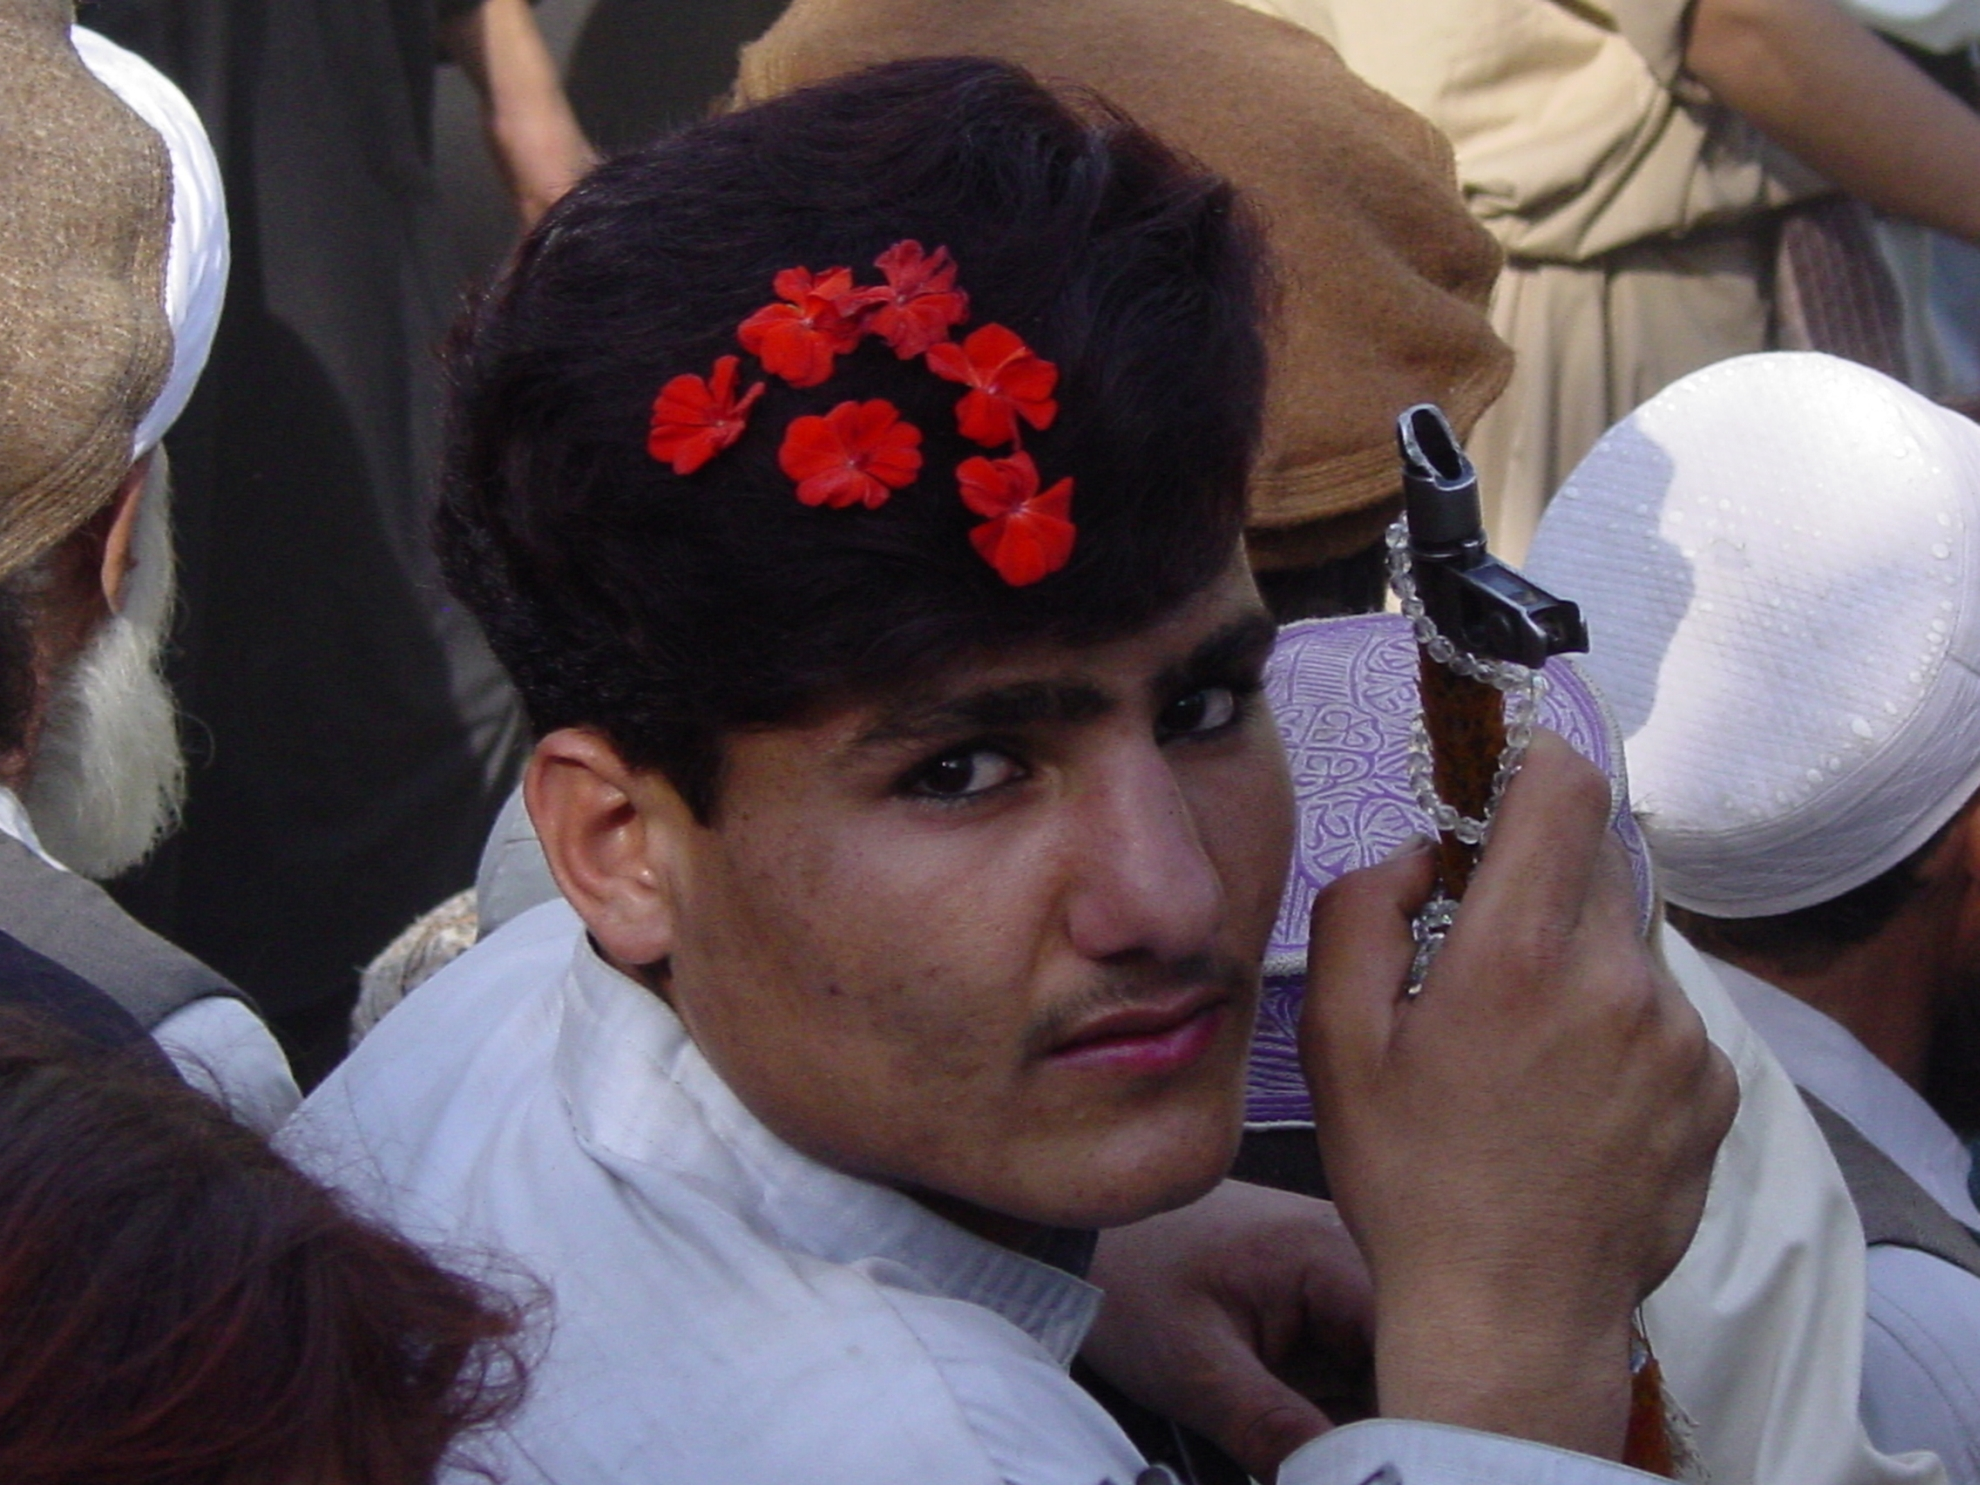 Many boys and men adorn themselves with flowers and make-up when attending a wedding. Photo: Jens Kjær Jensen, 2003